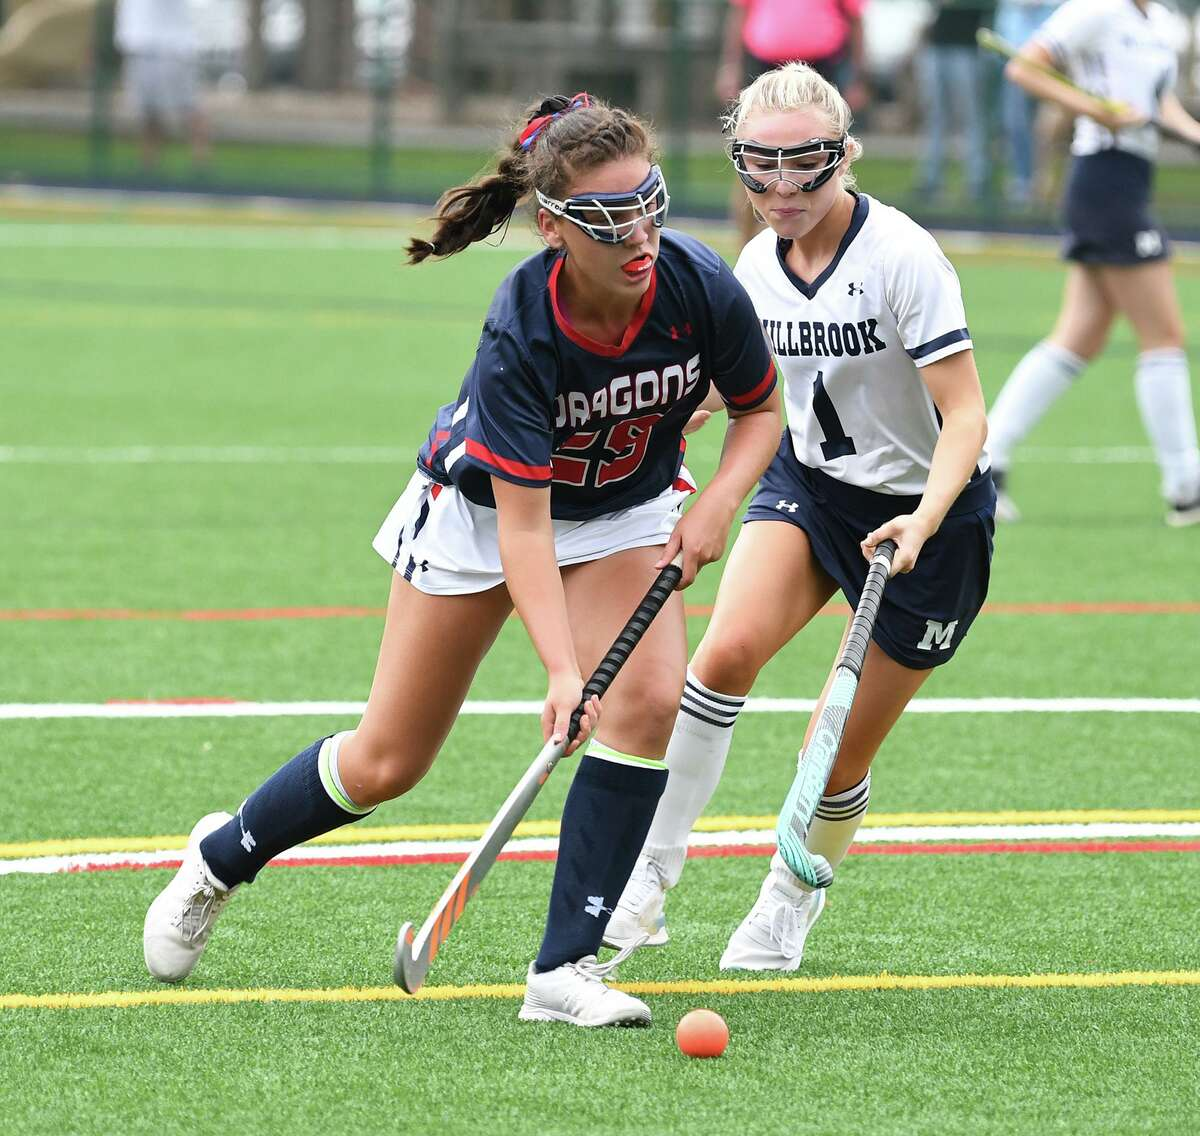 Junior Zoe Koskinas (Fairfield) scored five goals to lead Greens Farms Academy to an 11-0 win over Millbrook Saturday.